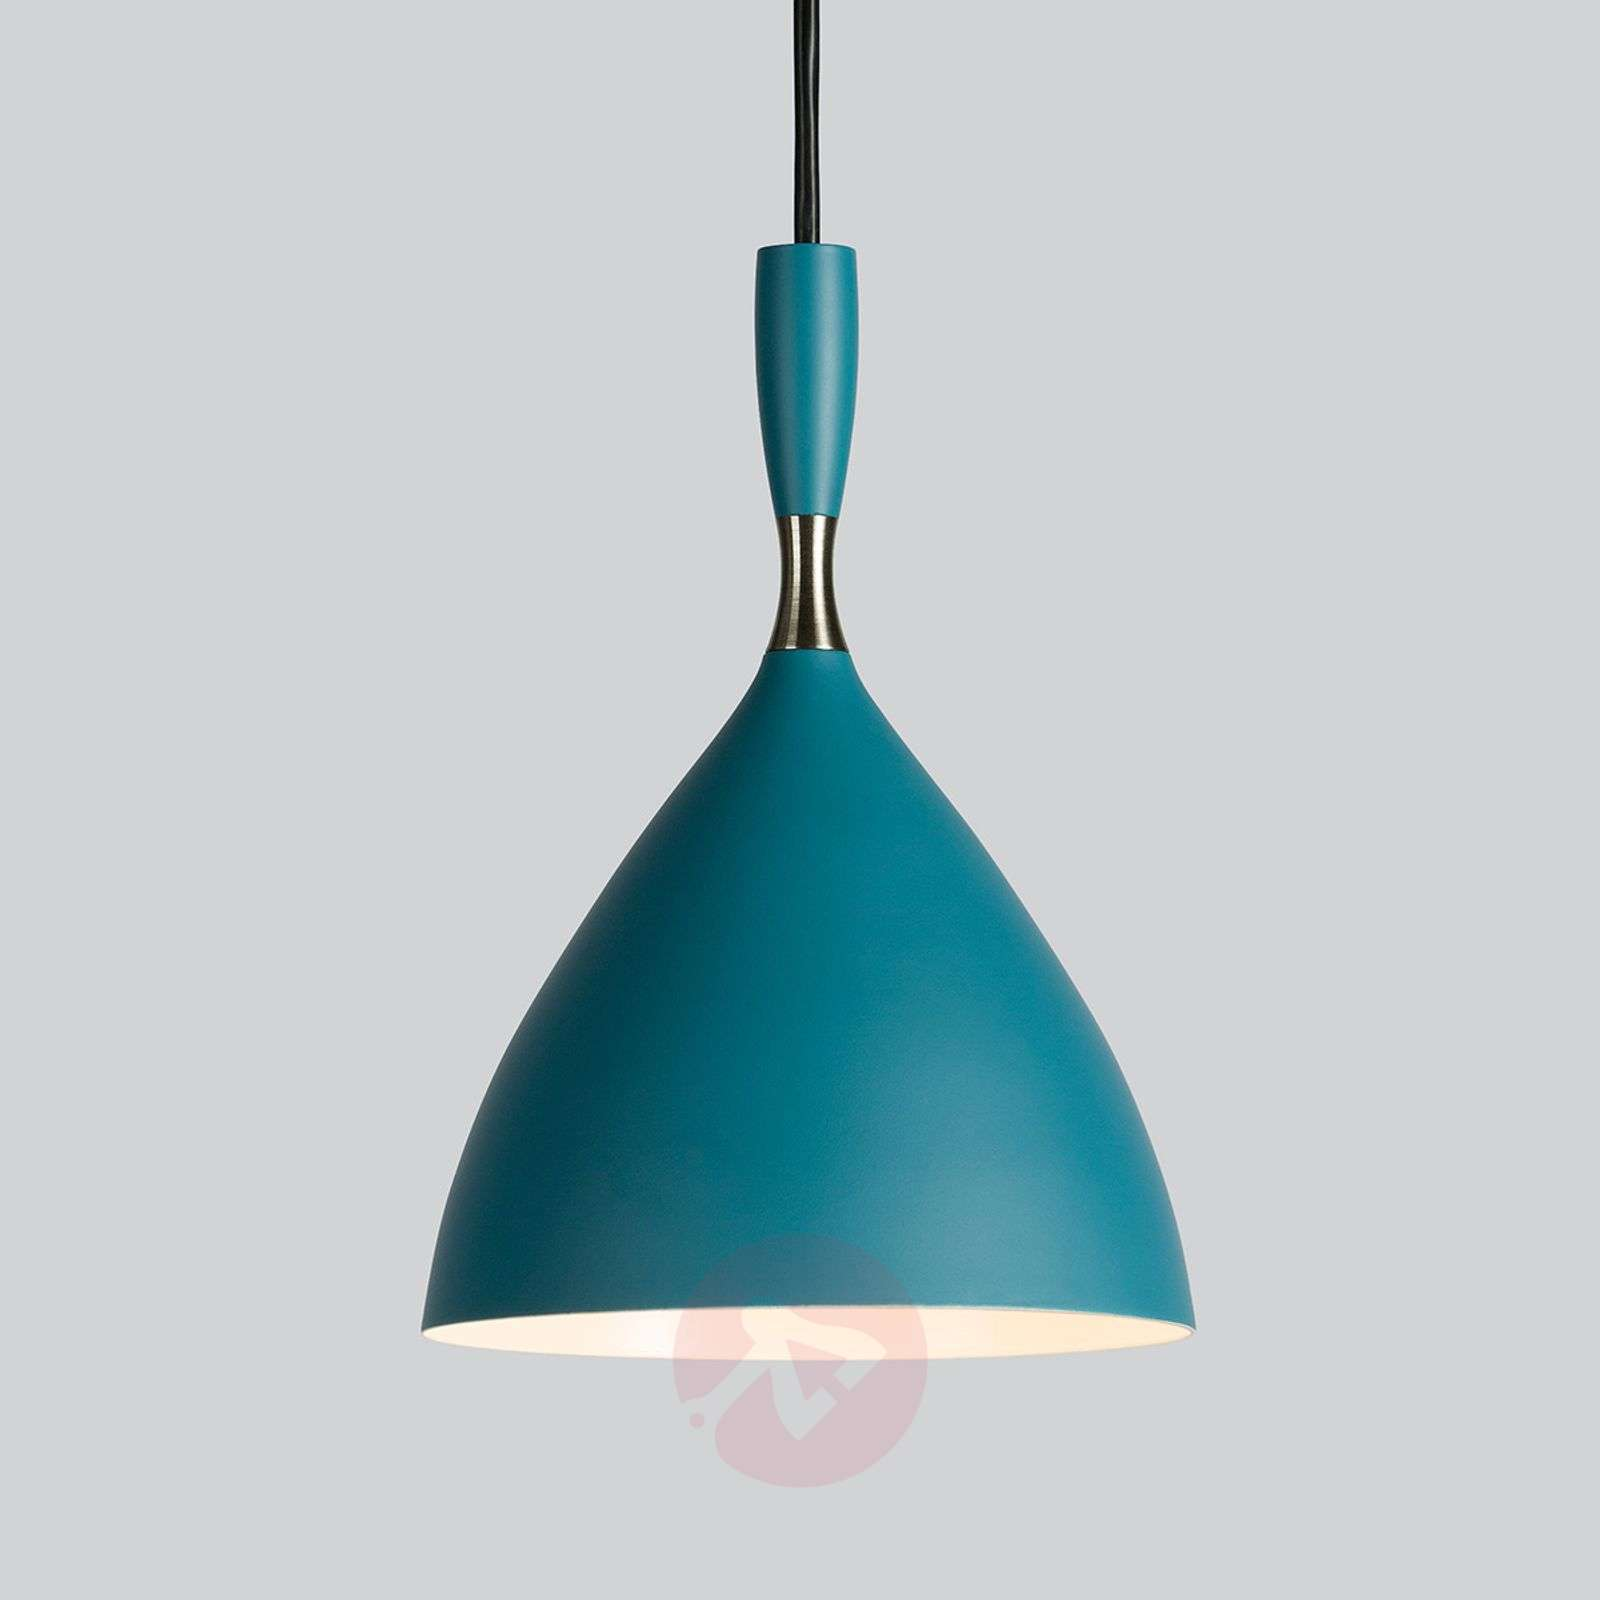 Dokka Retro designerlamp in blauwgroen-7013060-01